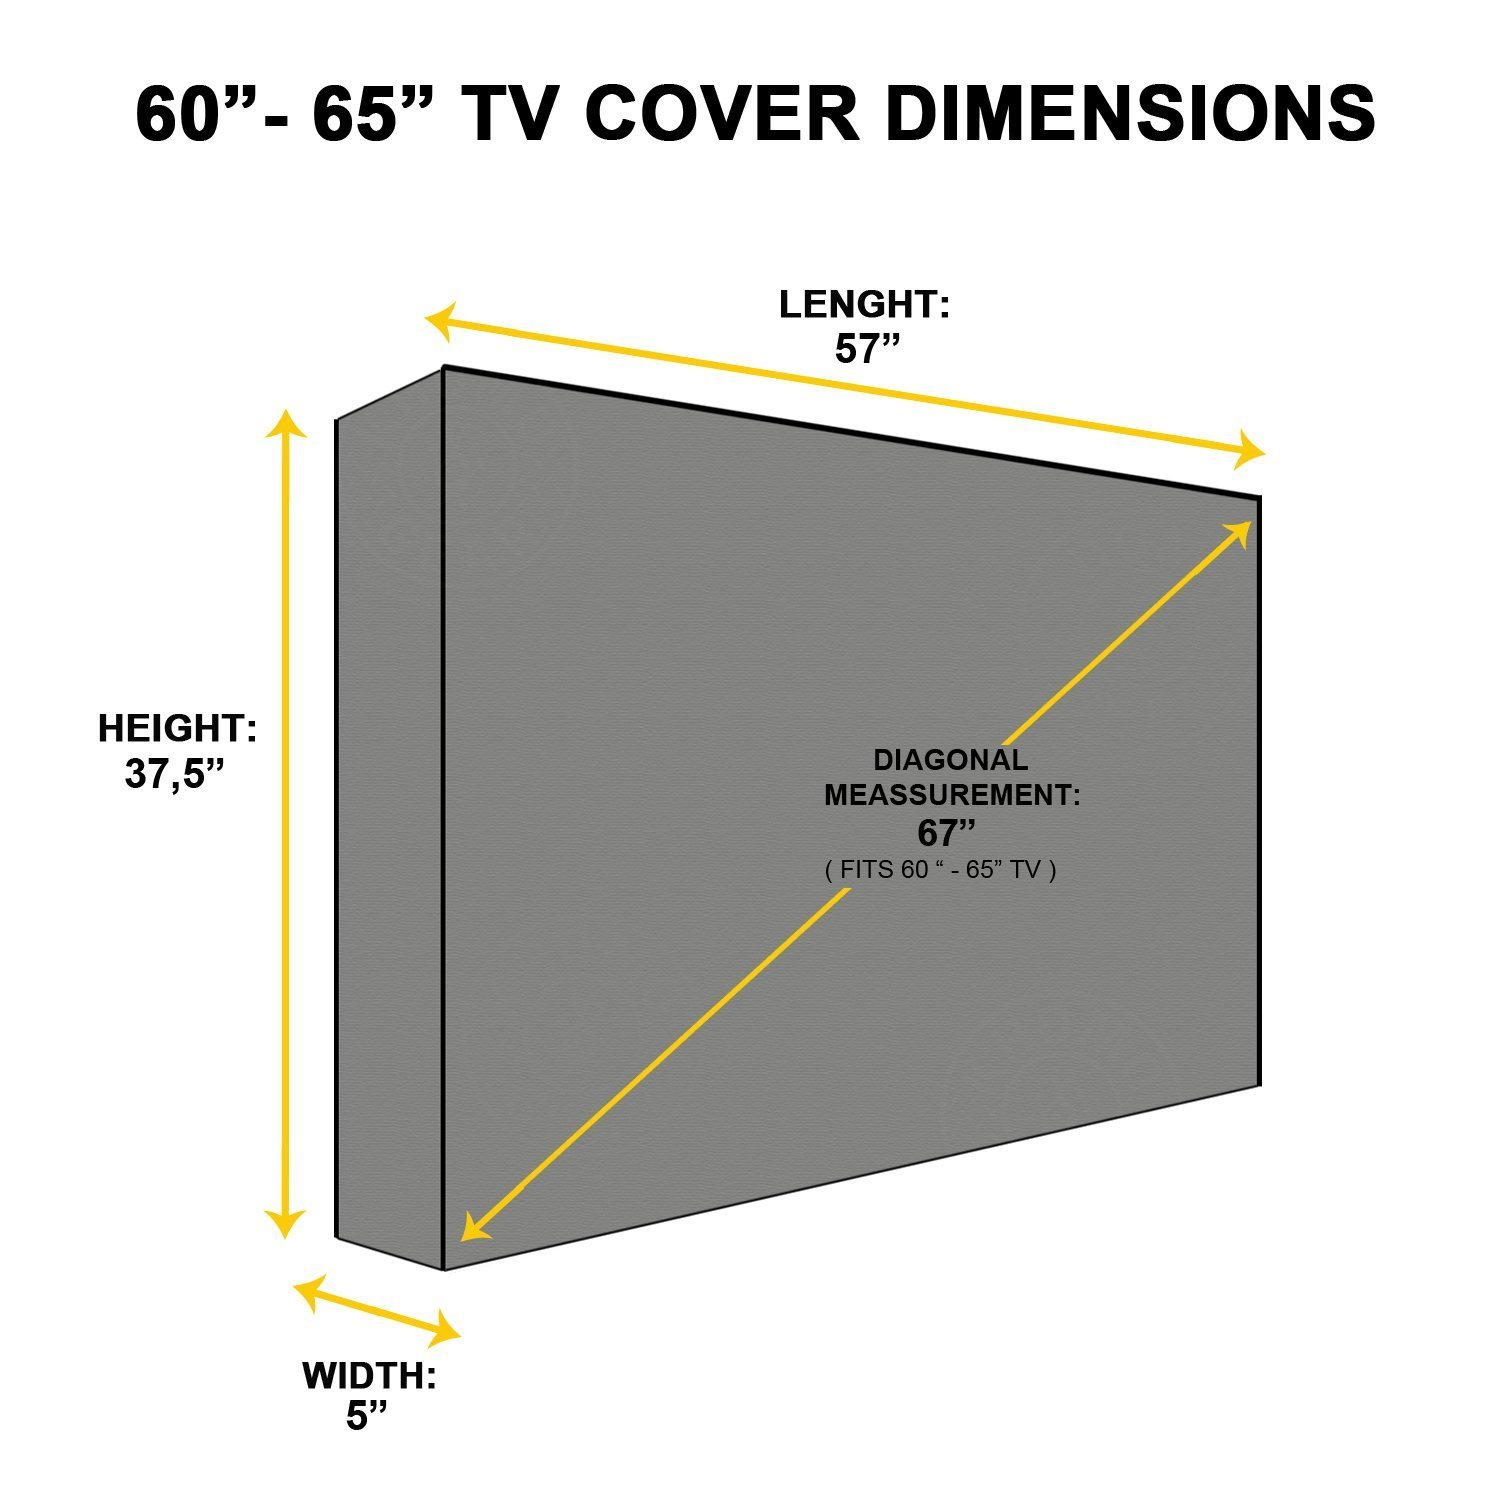 KHOMO GEAR Outdoor TV Cover with Clear Front Universal Weatherproof Protector for 60 - 65 Inch TV - Fits Most Mounts & Brackets by KHOMO GEAR (Image #3)